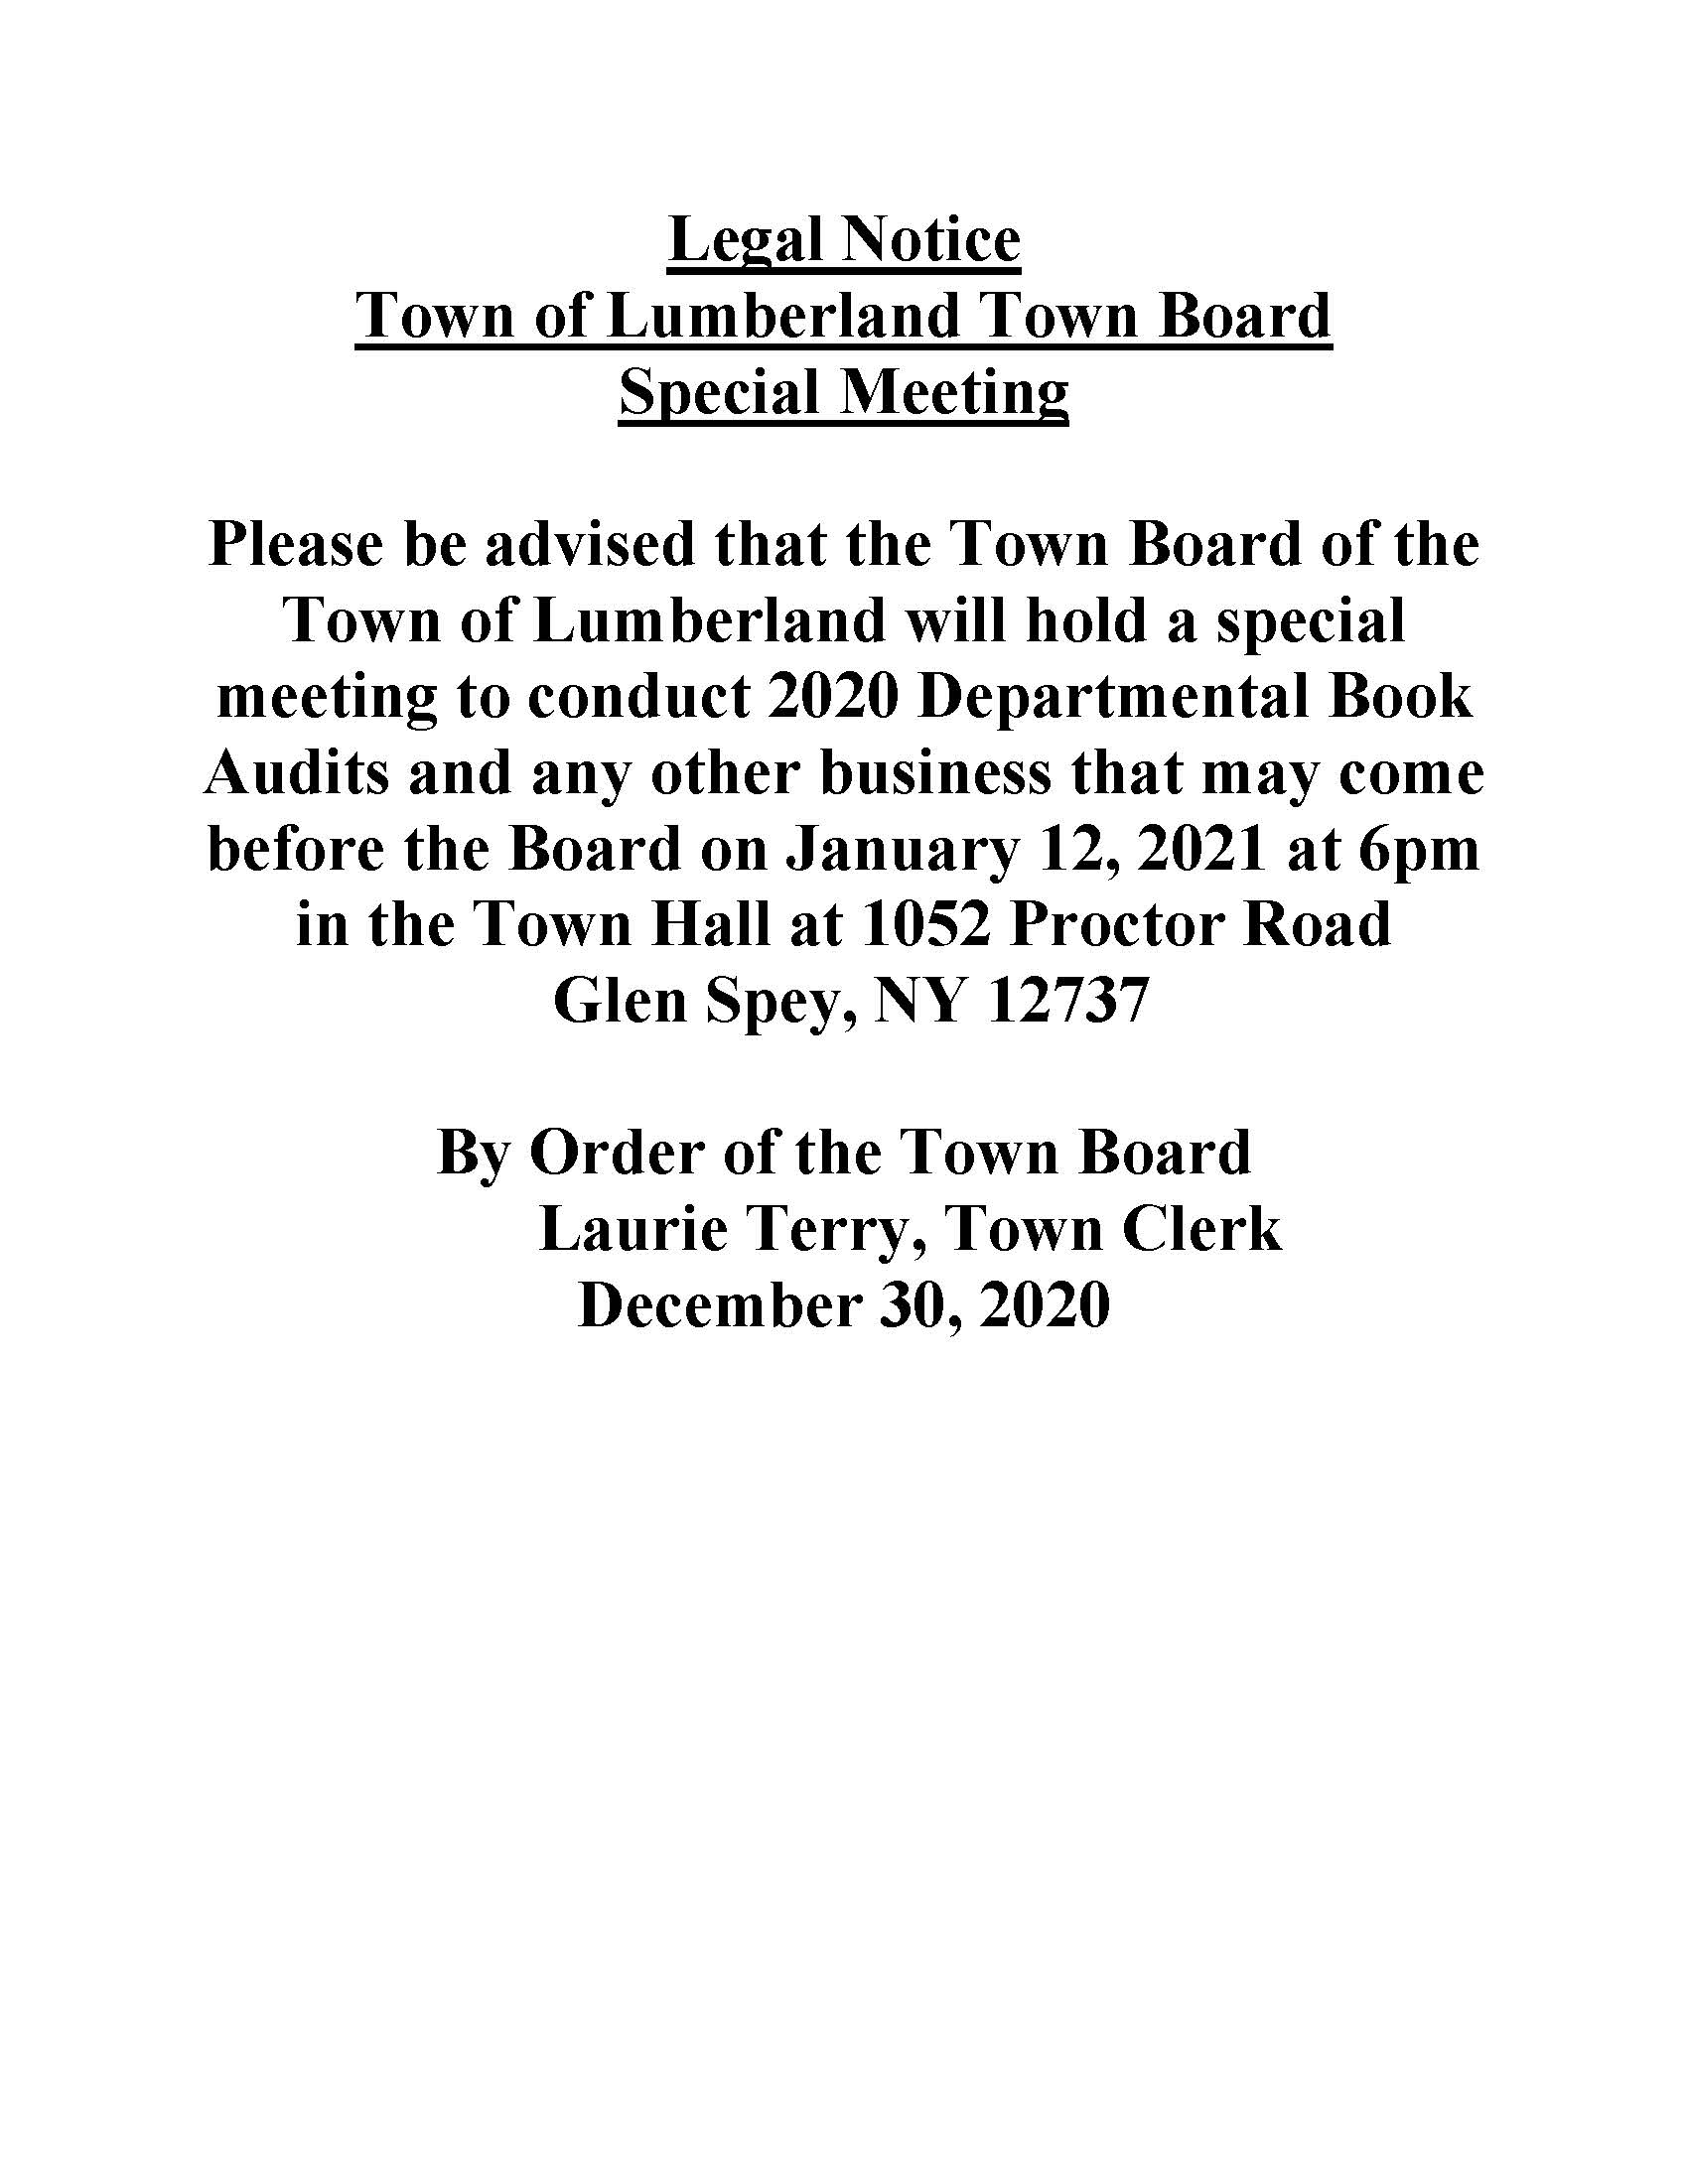 Legal Notice - Book Audit 2020